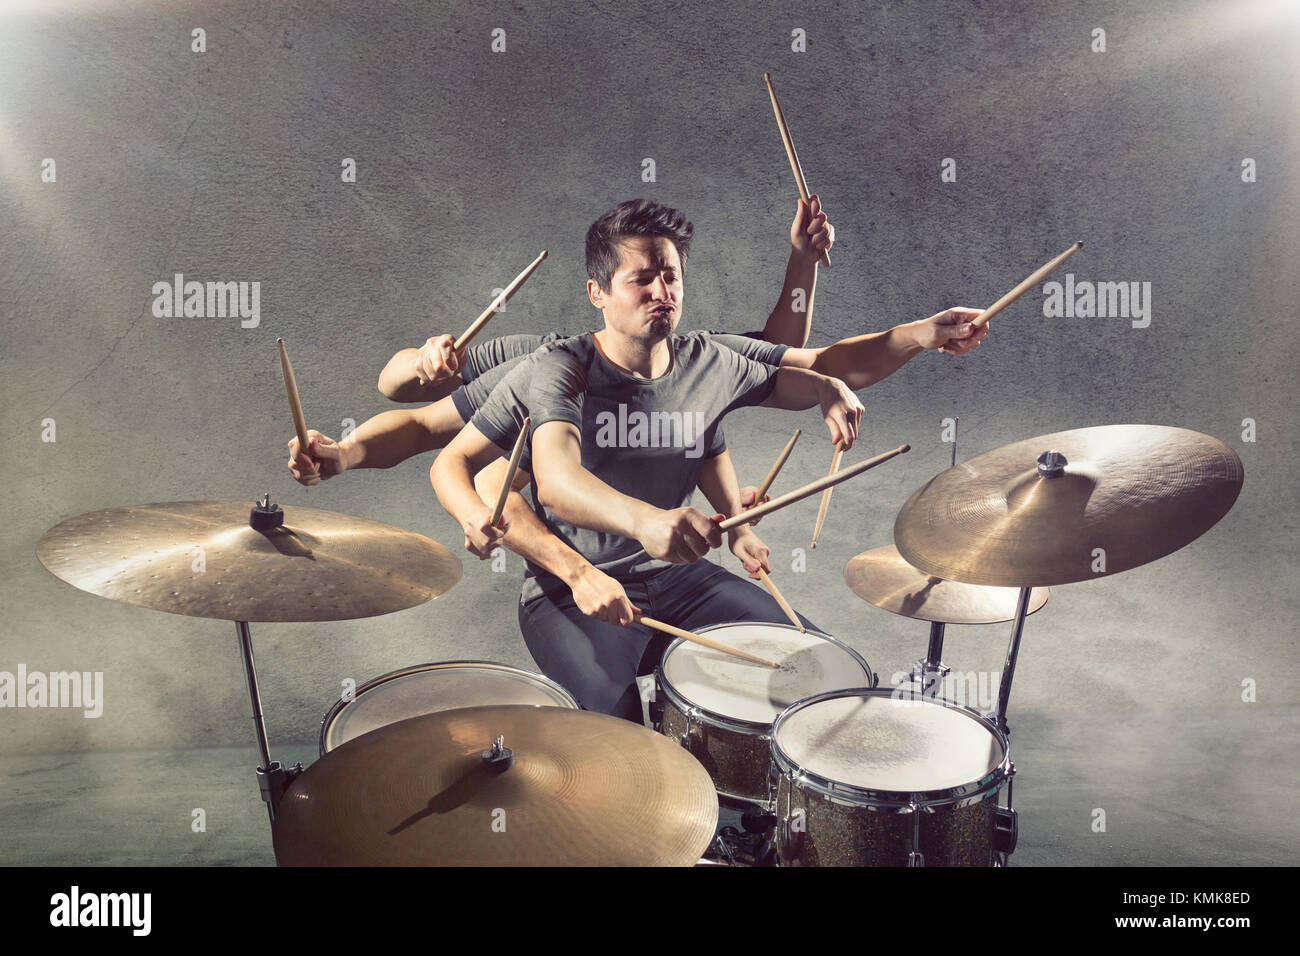 Drummer with many arms - Stock Image